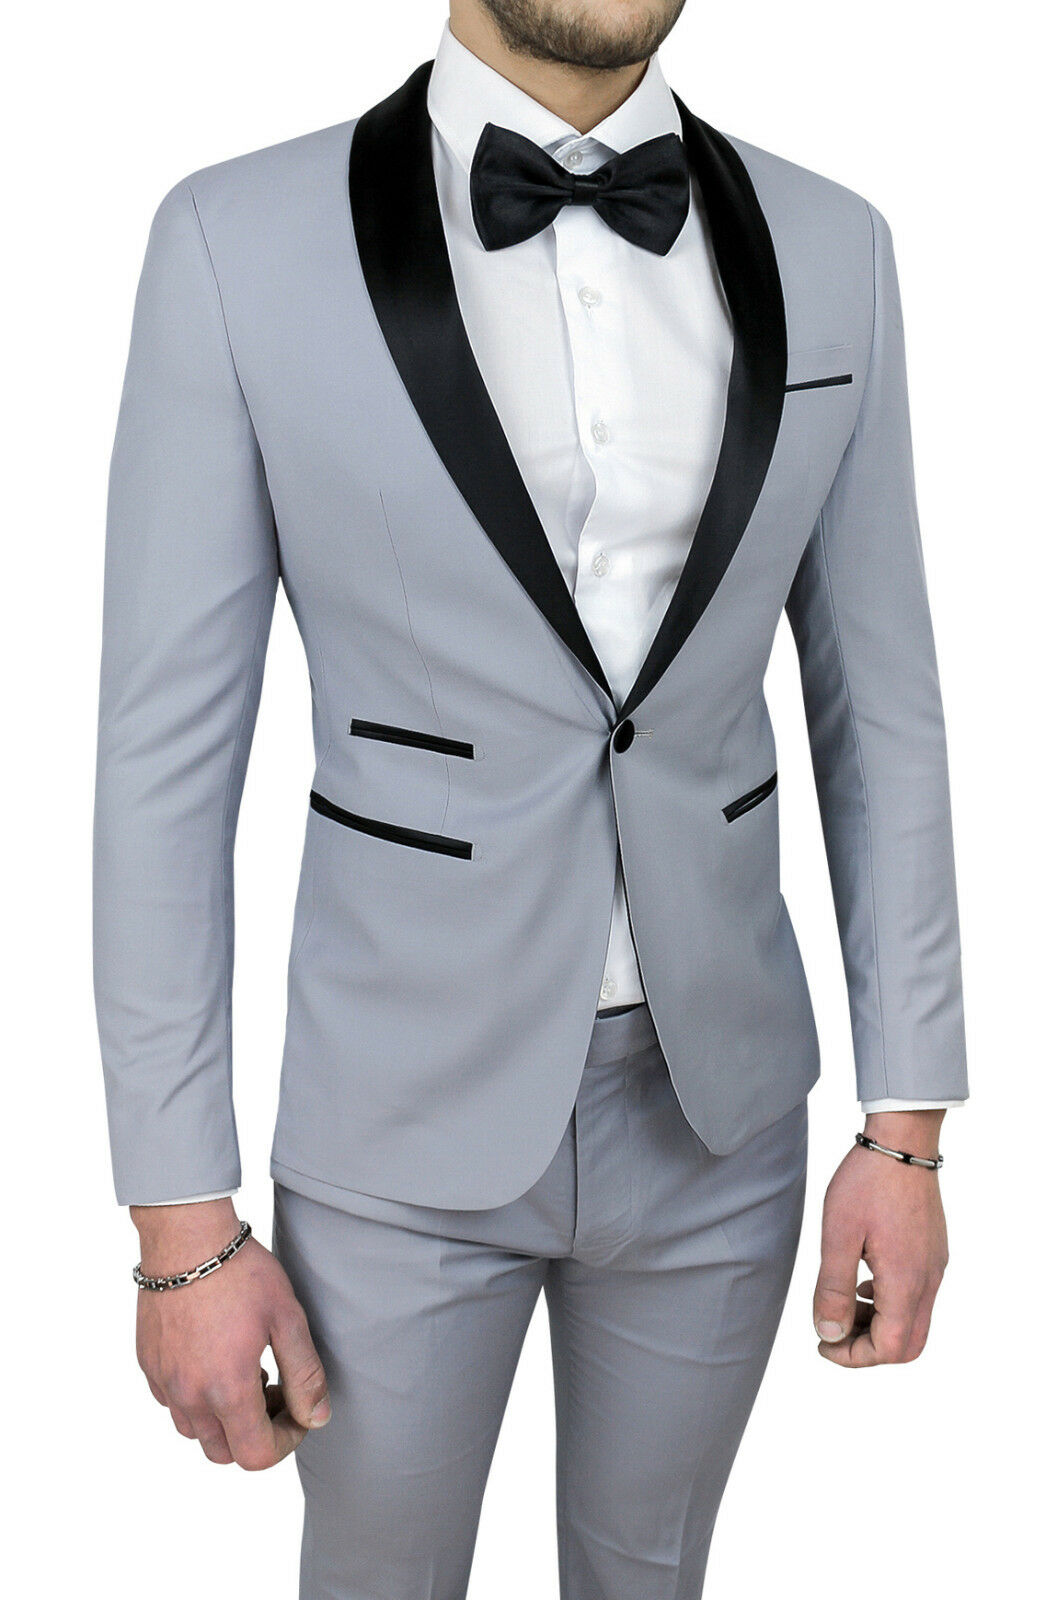 Men's Men's Men's Suit Diamond Satin grau Sartorial Set Elegante Dress Zeremonie b57